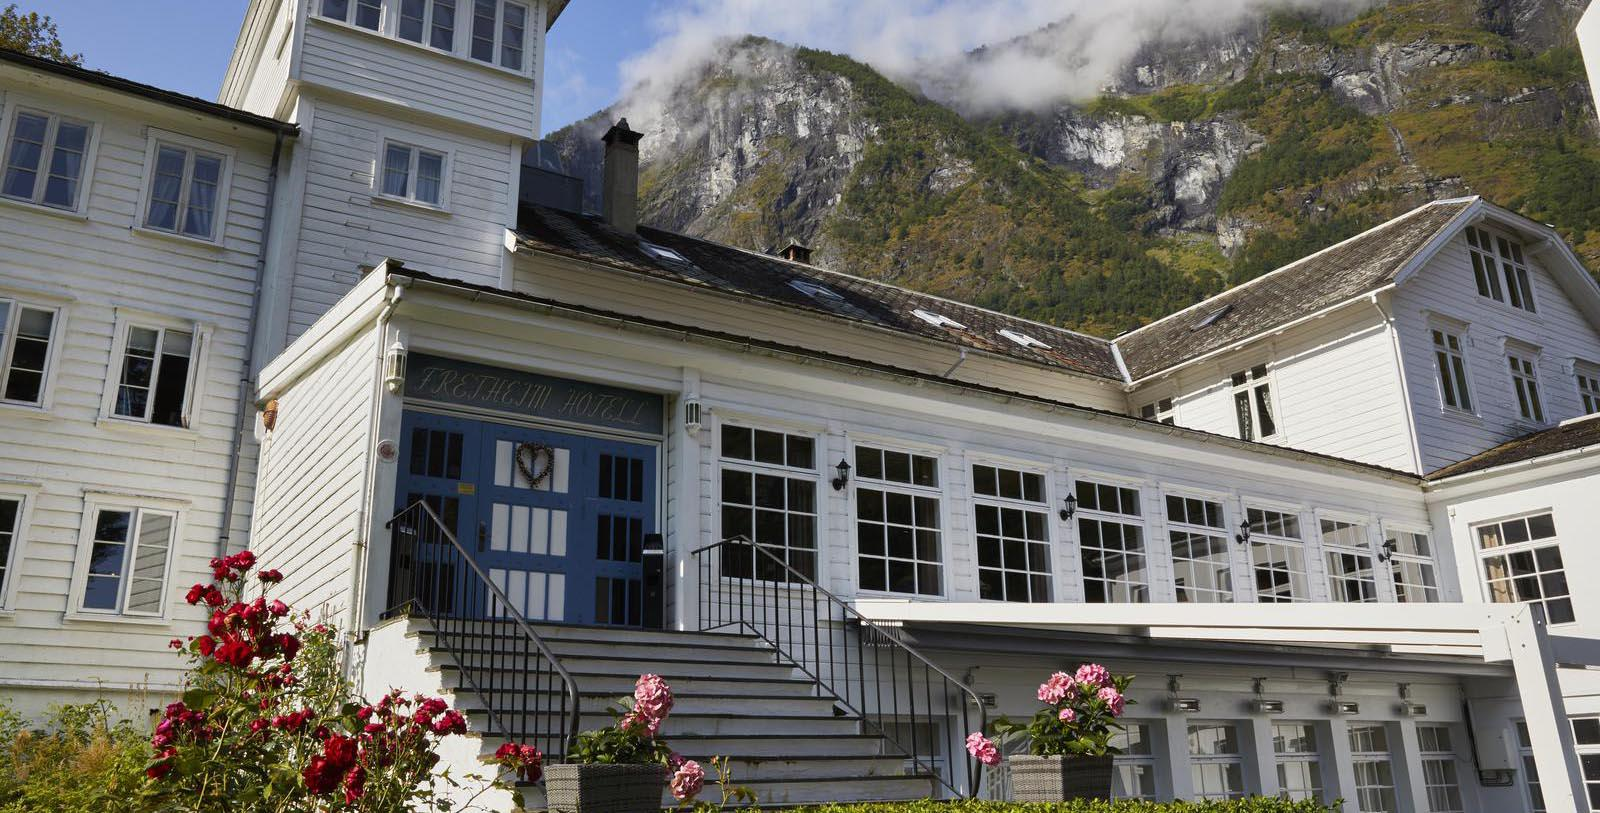 Image of Fretheim Hotel, Hotel Exterior, Flam, Norway, 1870, Member of Historic Hotels Worldwide, Overview